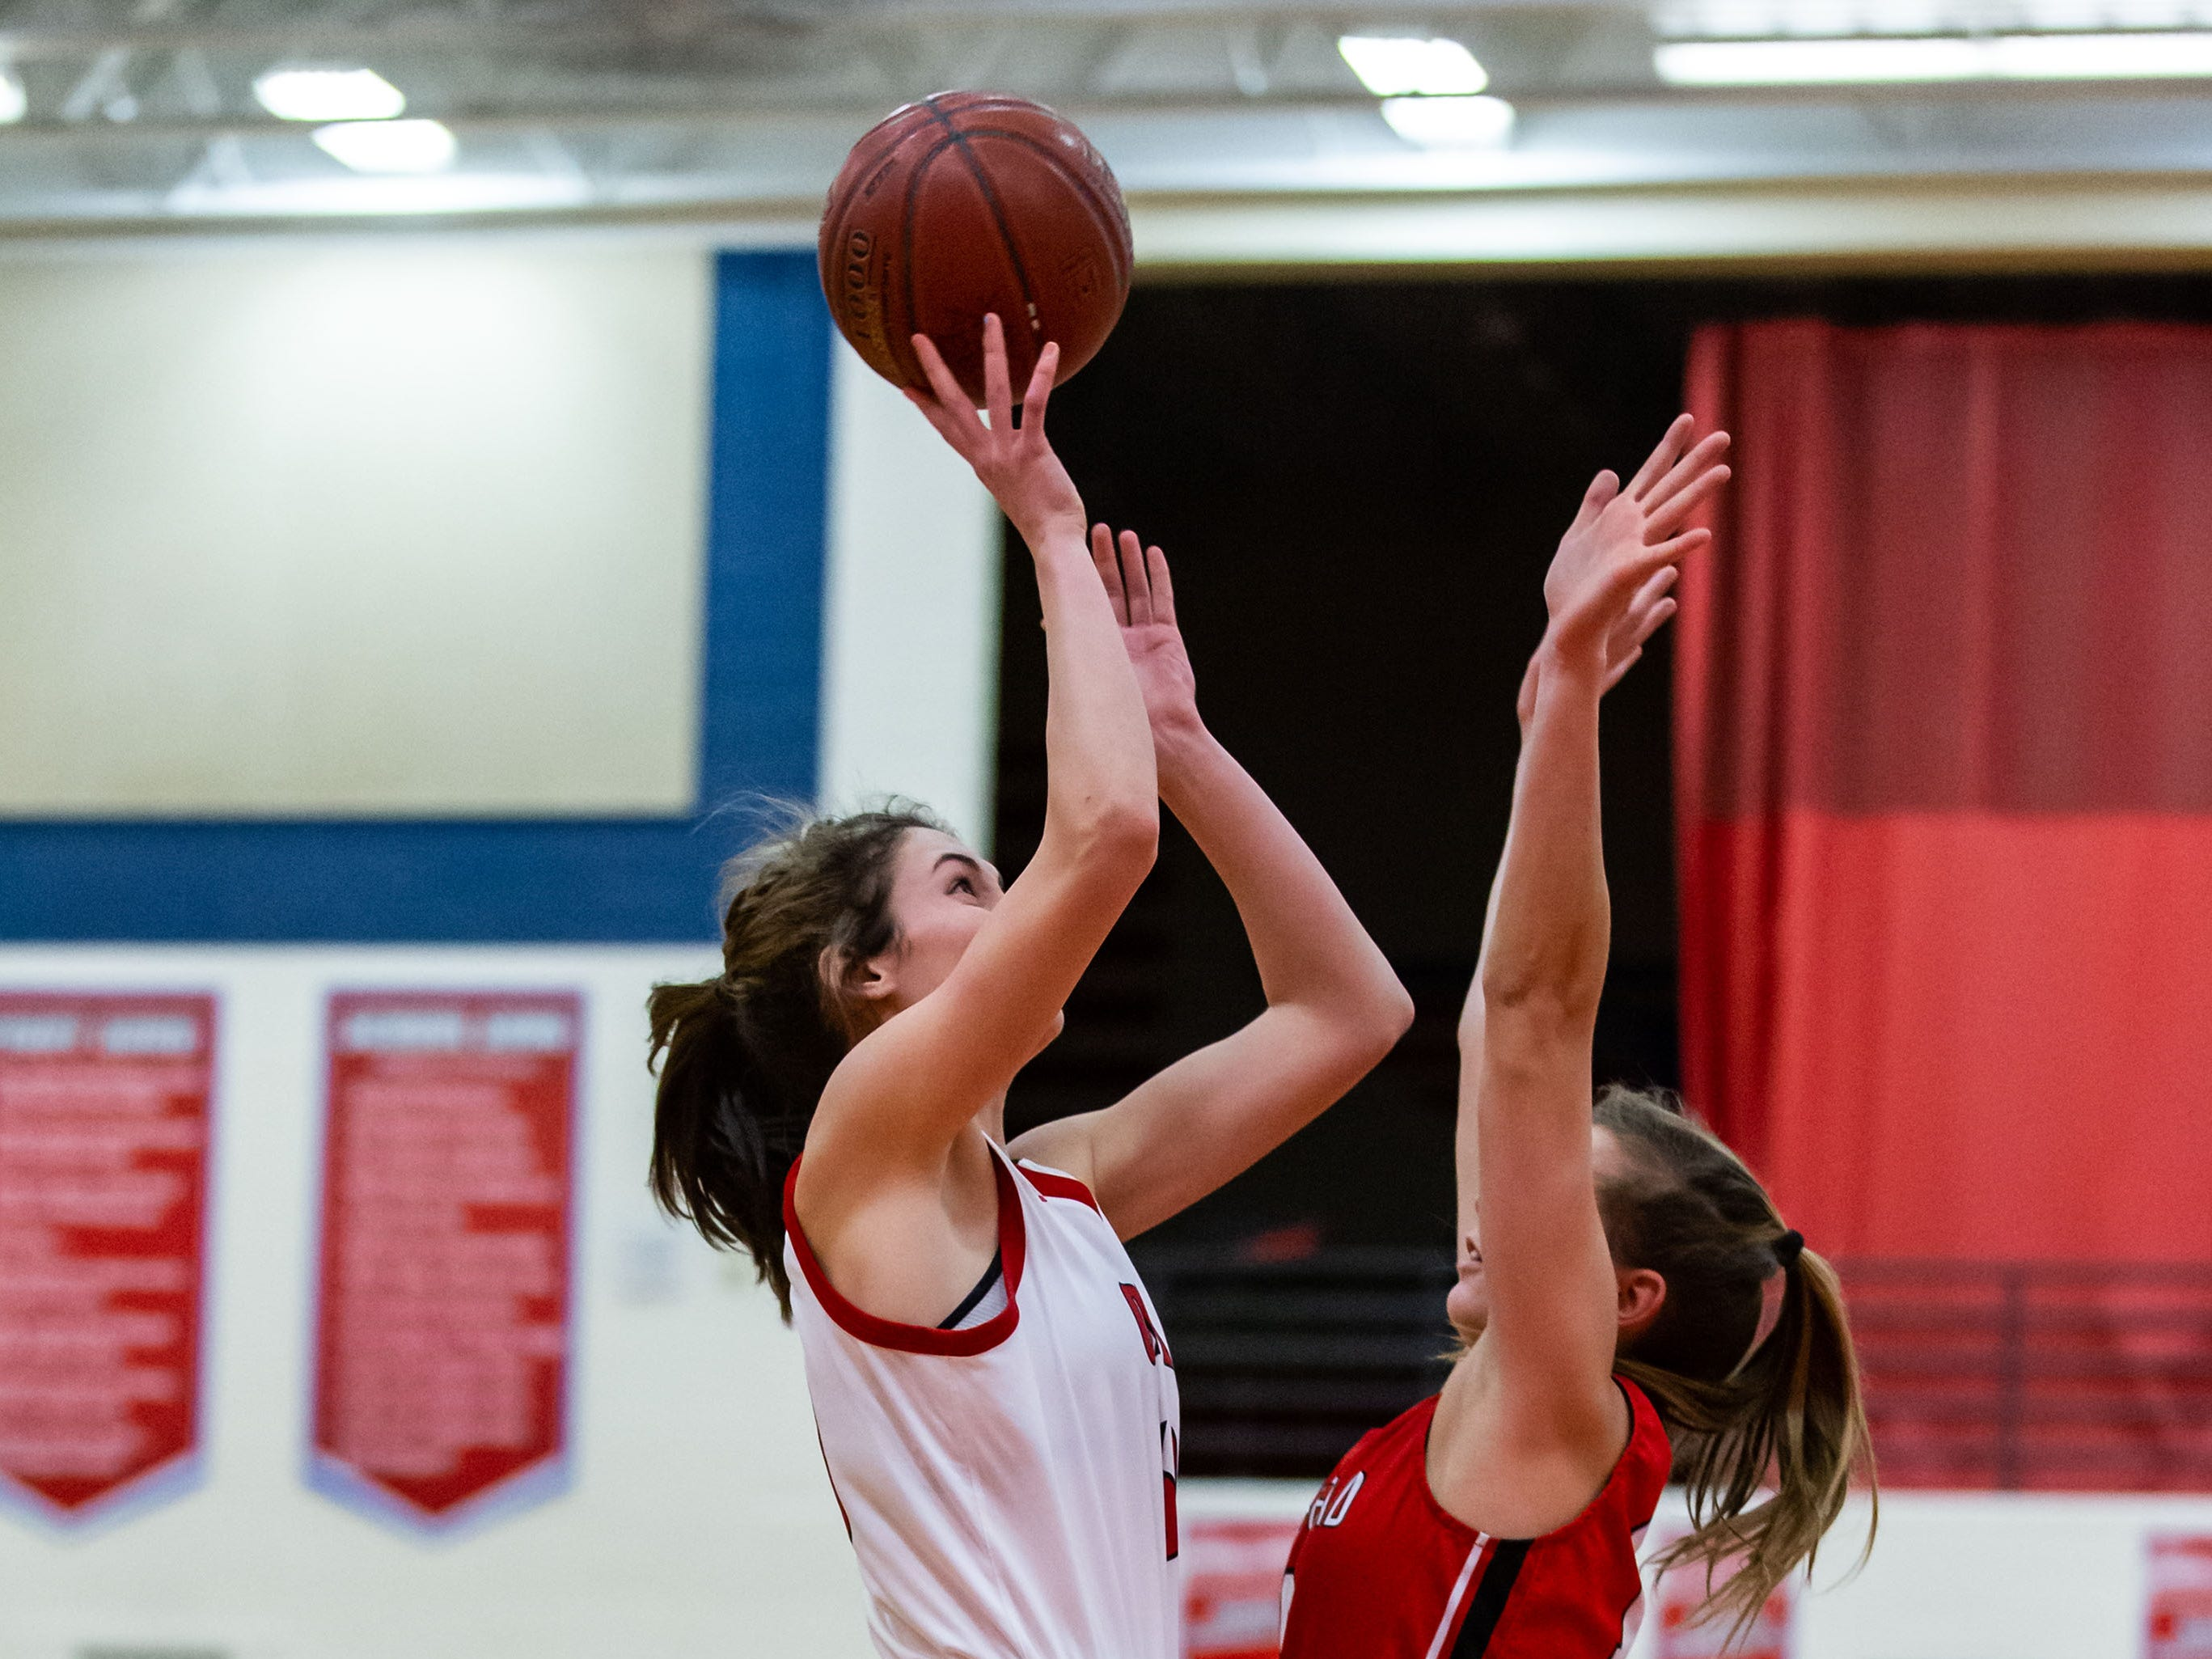 Slinger's Kacey Ott (left) elevates for a shot during the game at home against Homestead on Friday, Jan. 11, 2019.